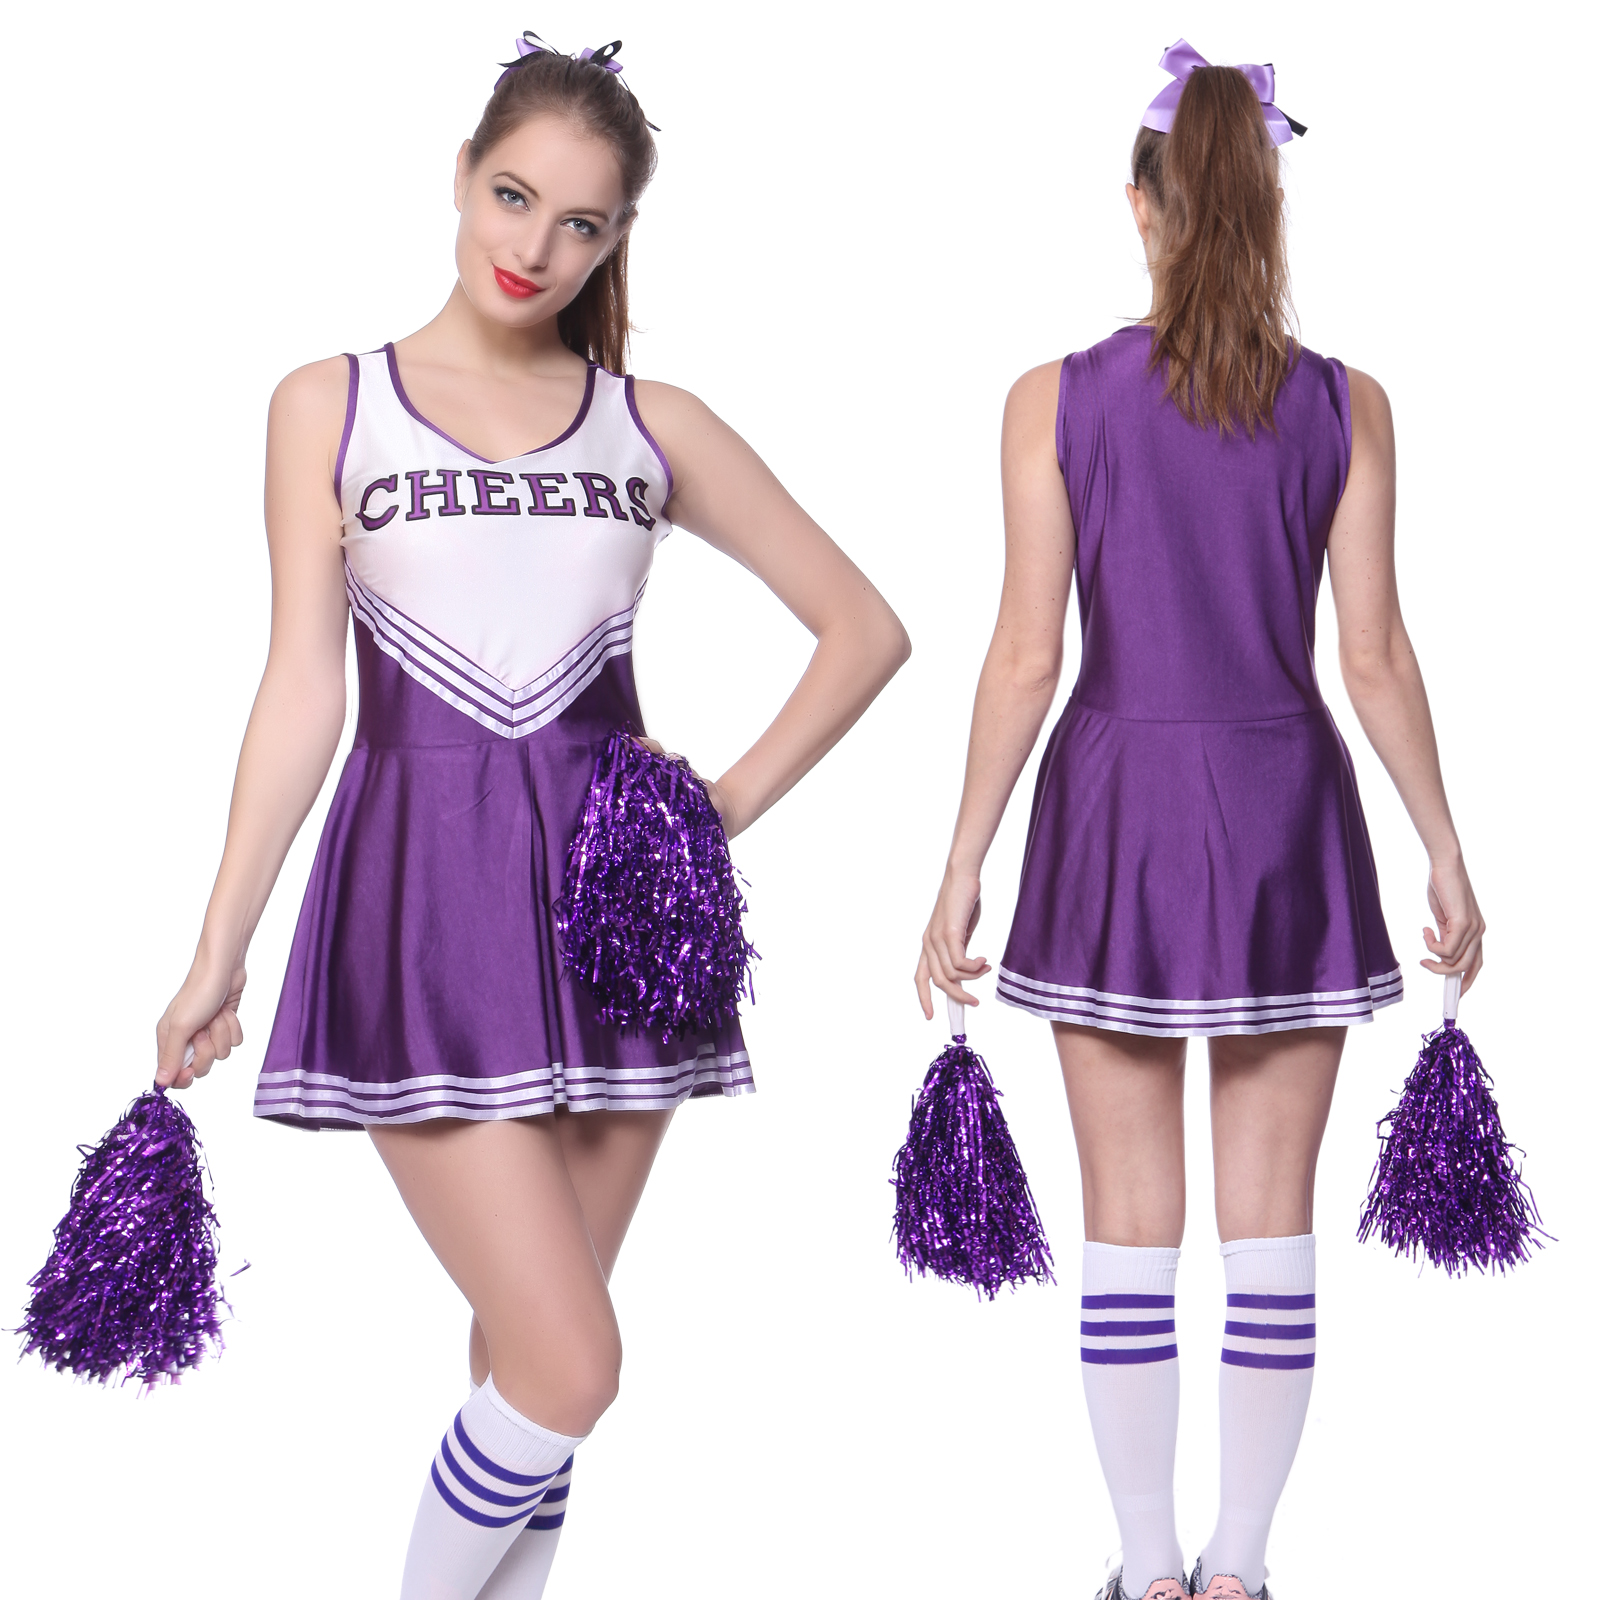 Women cheerleader uniform school girl fancy dress costume outfit women cheerleader uniform school girl fancy dress costume outfit pompom or socks ebay solutioingenieria Images